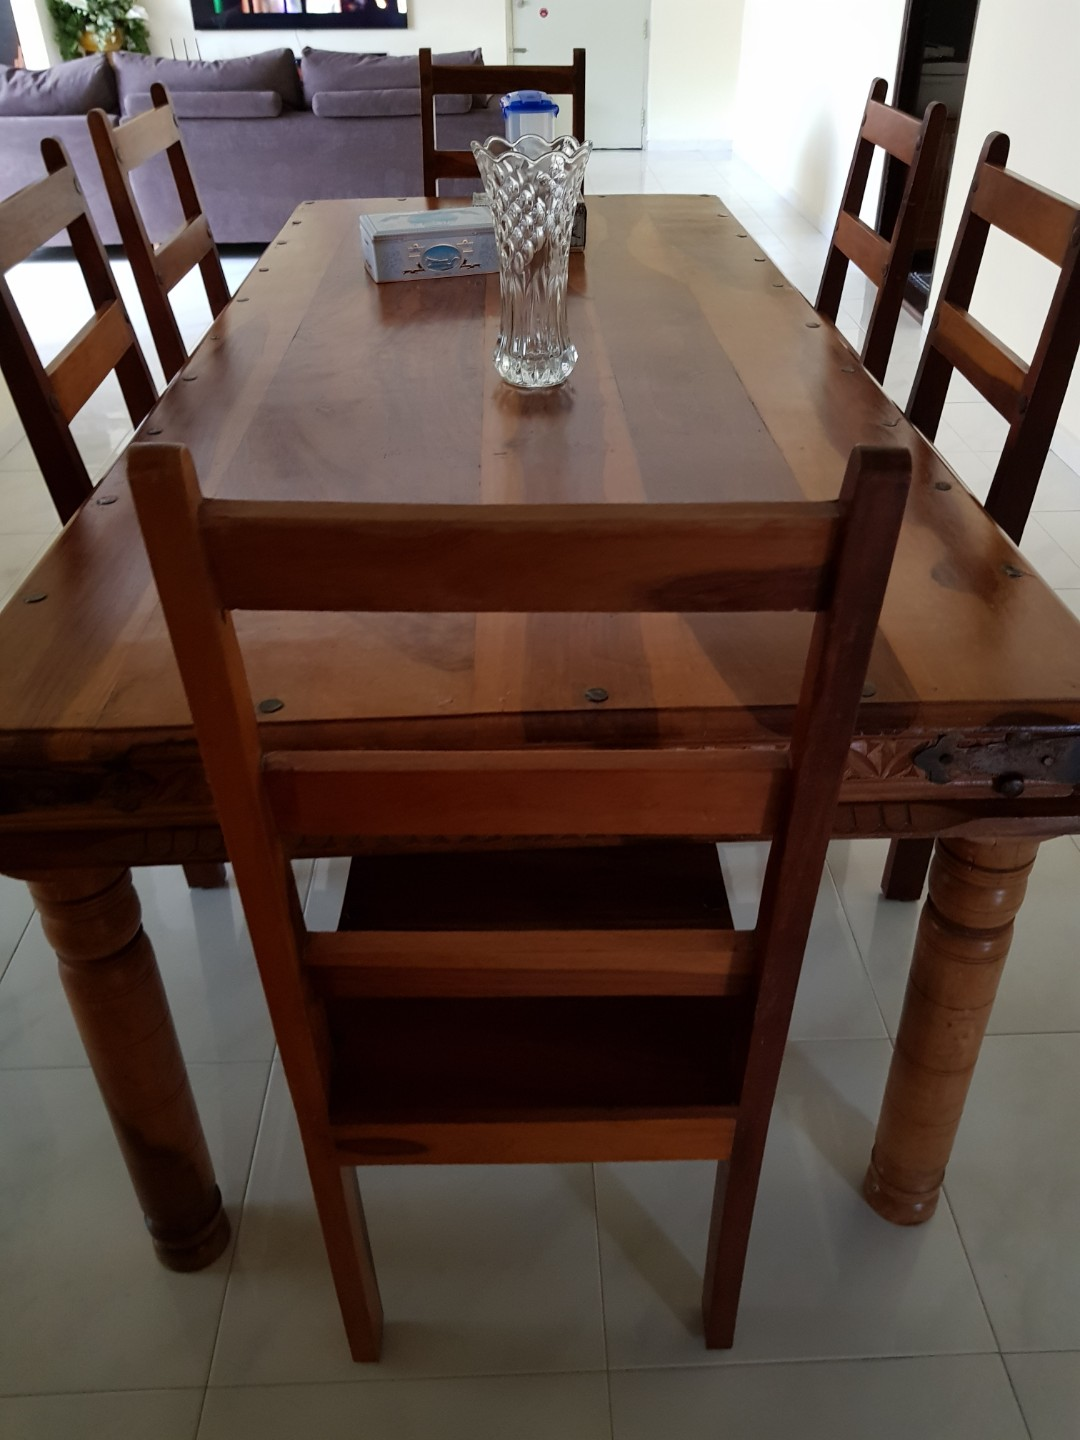 306d09f76a3f Teak Wood Dining Table with 6 chairs